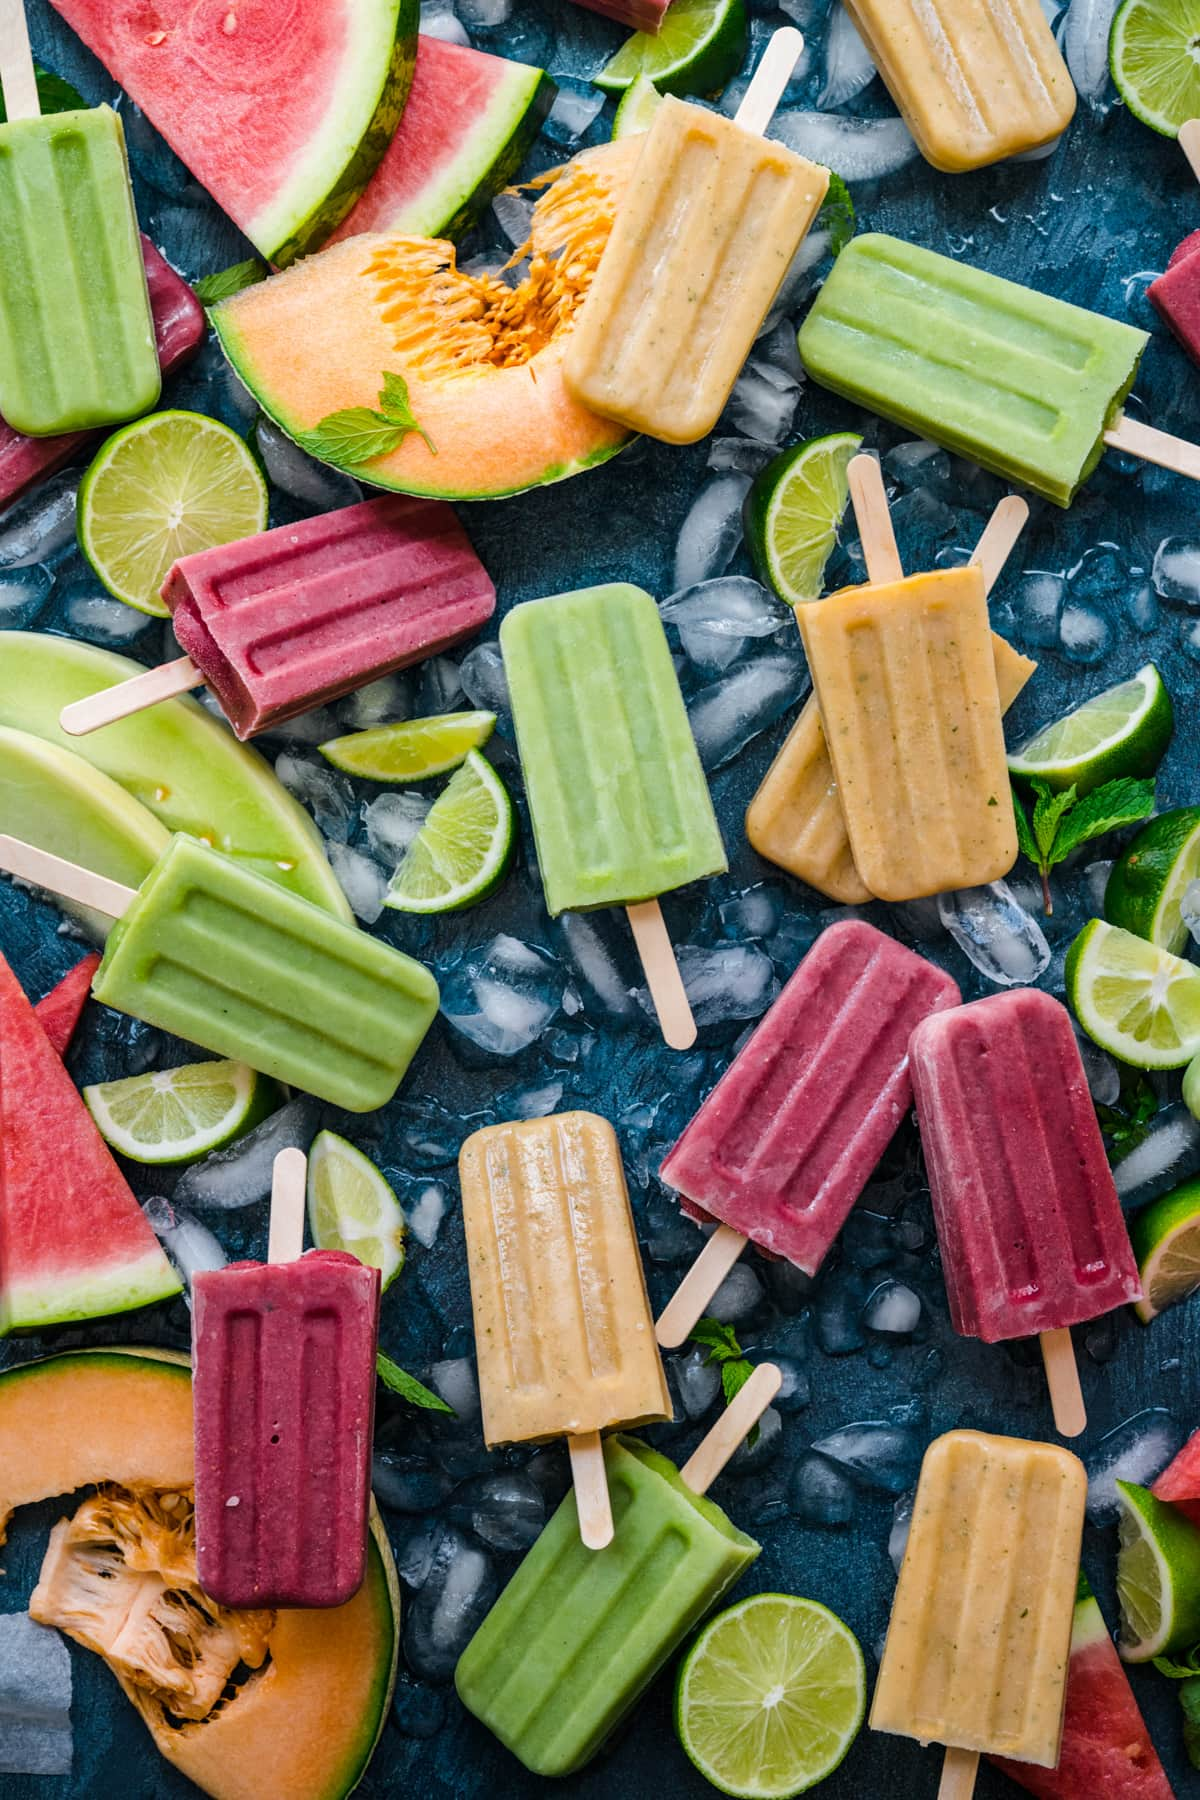 overhead view of watermelon, cantaloupe and honeydew melon yogurt popsicles on blue backdrop with fresh melon.